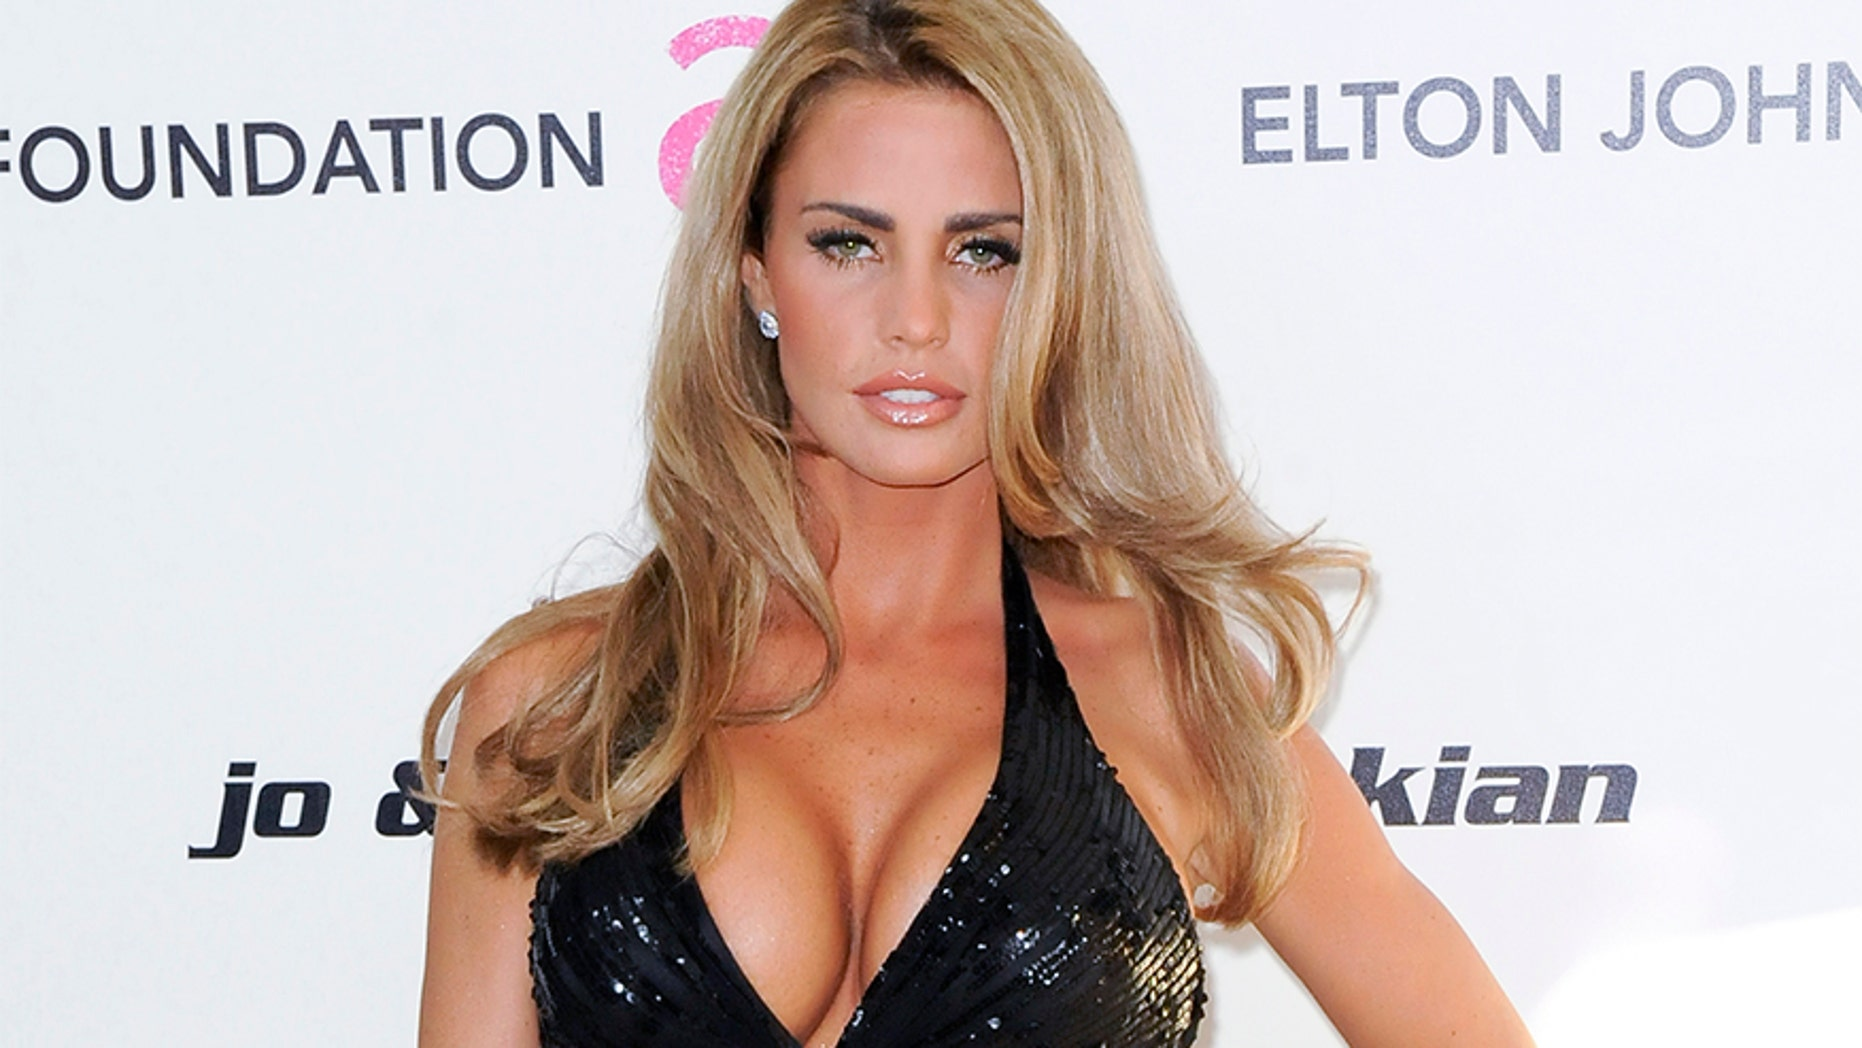 39. Katie Price nudes (76 photo), Sexy, Cleavage, Boobs, lingerie 2020